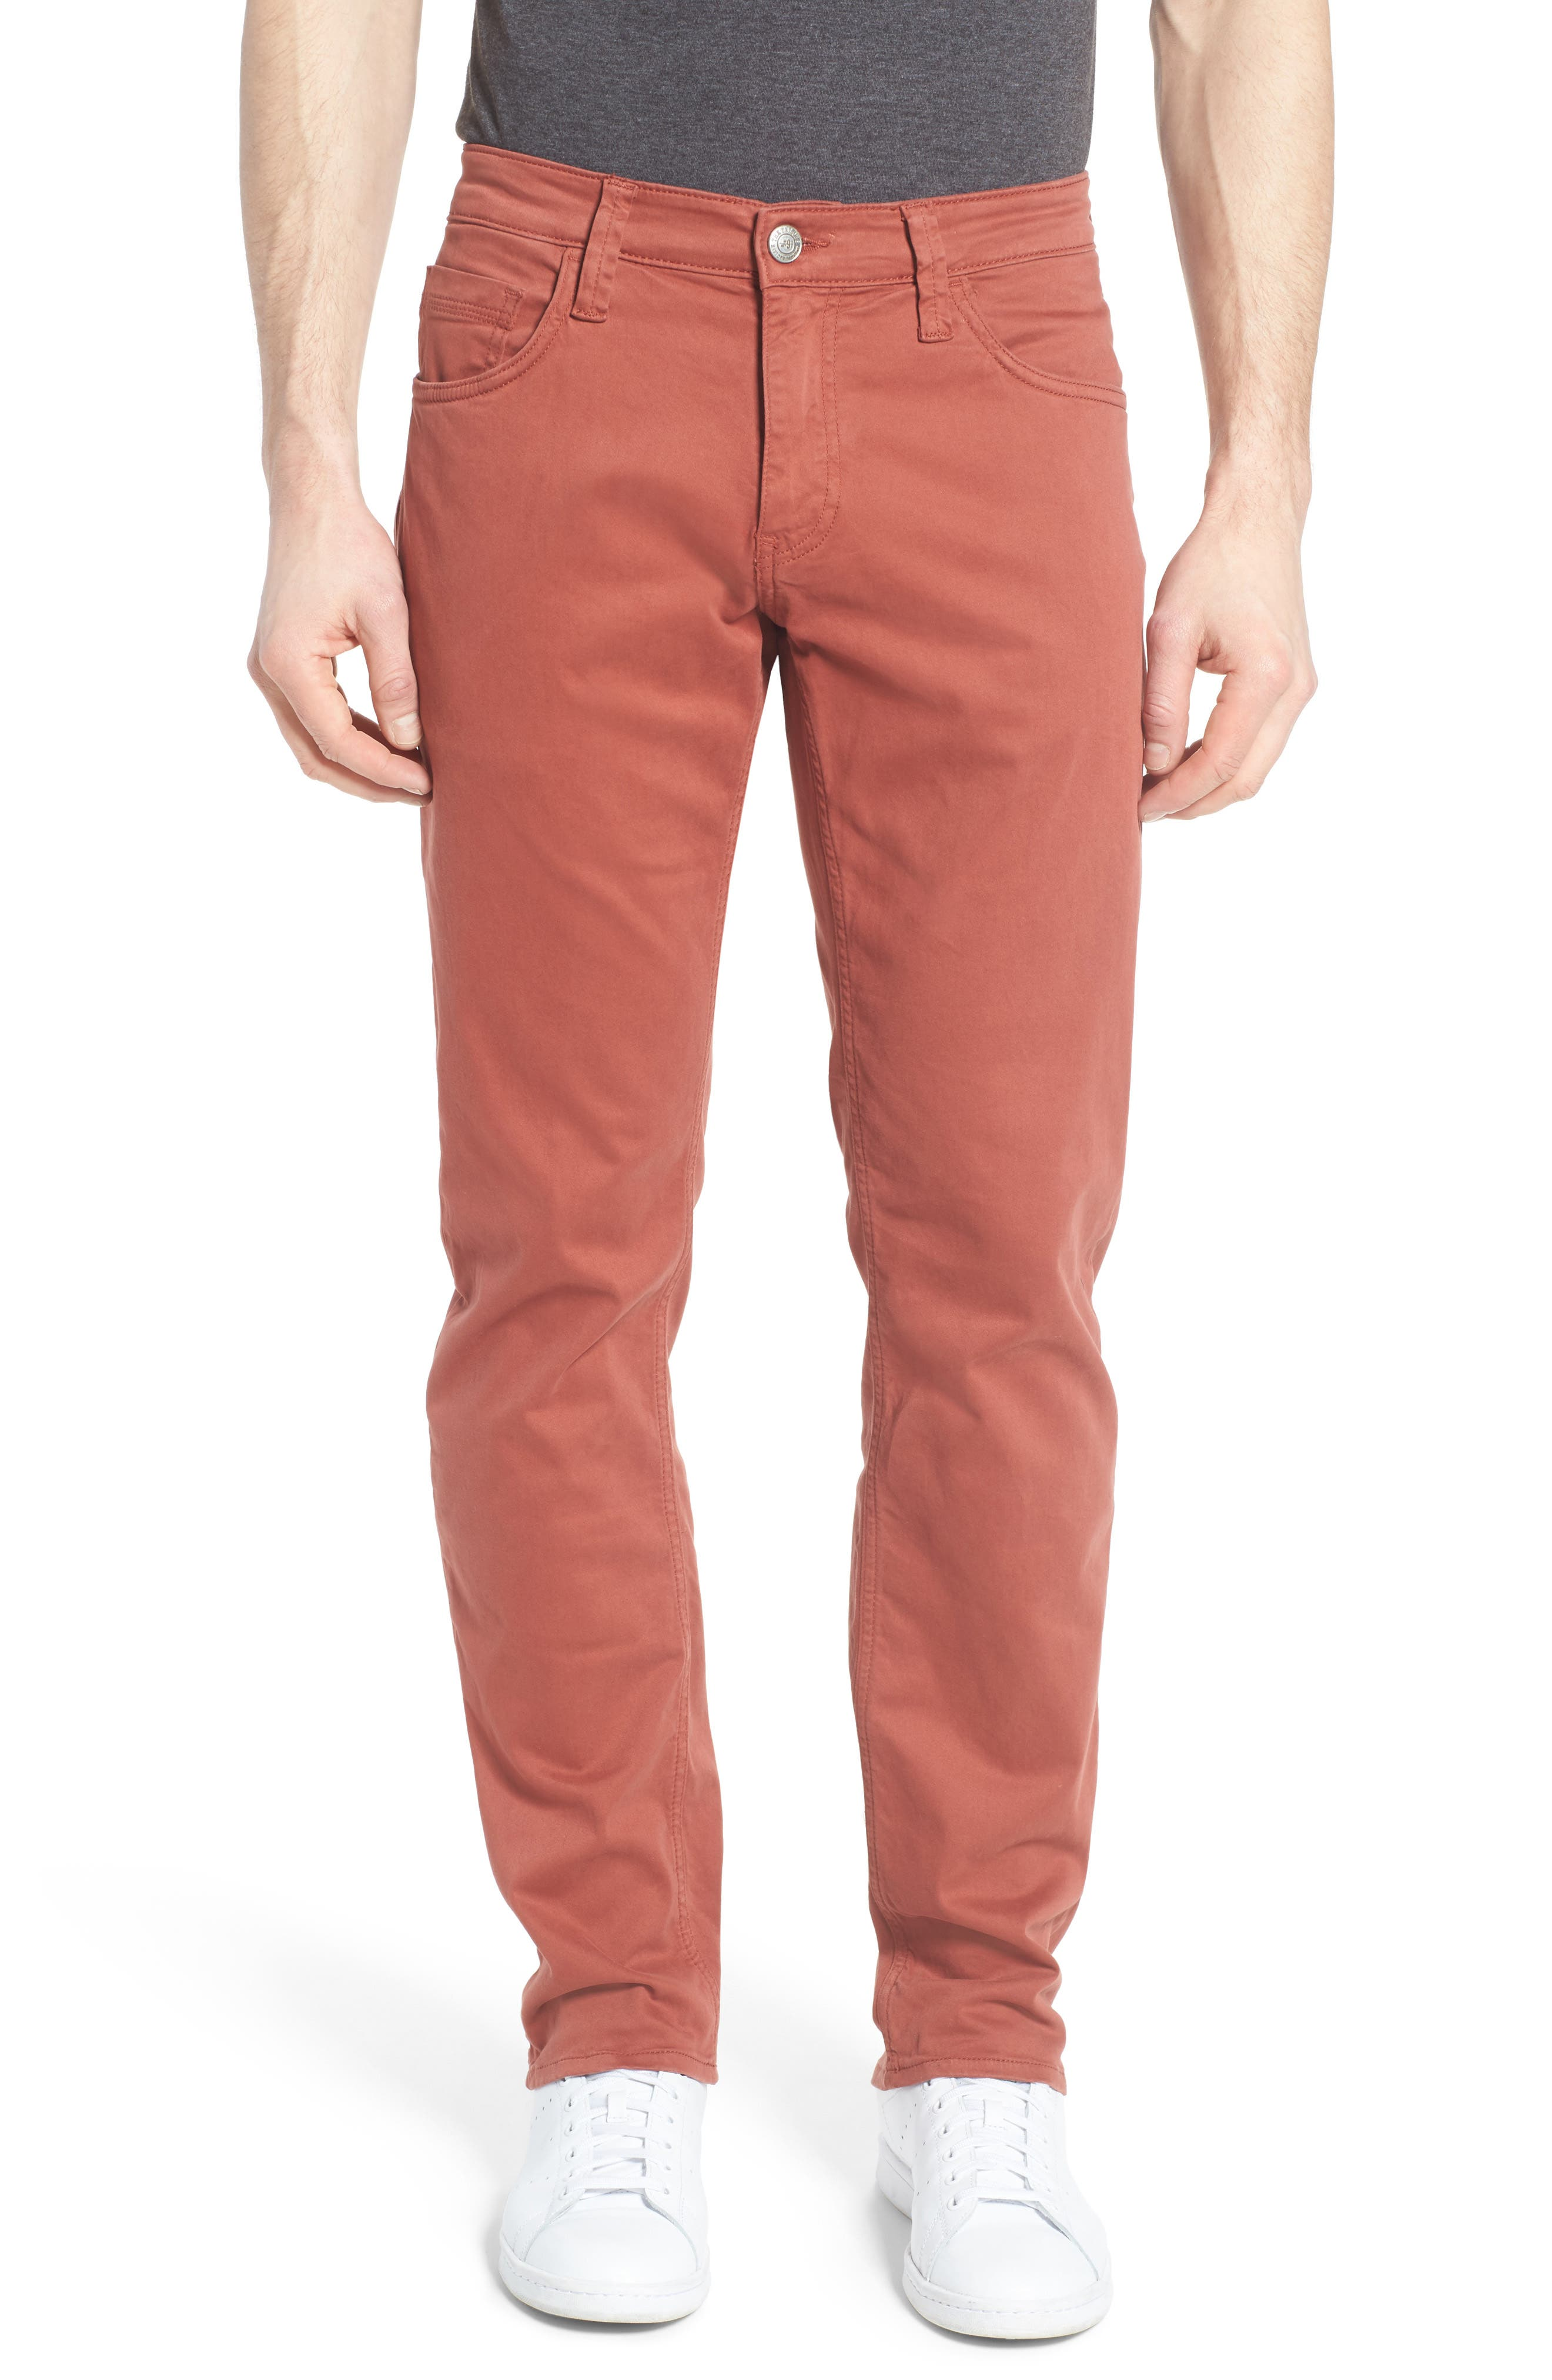 Zach Straight Leg Jeans,                             Main thumbnail 1, color,                             Brick Red Twill